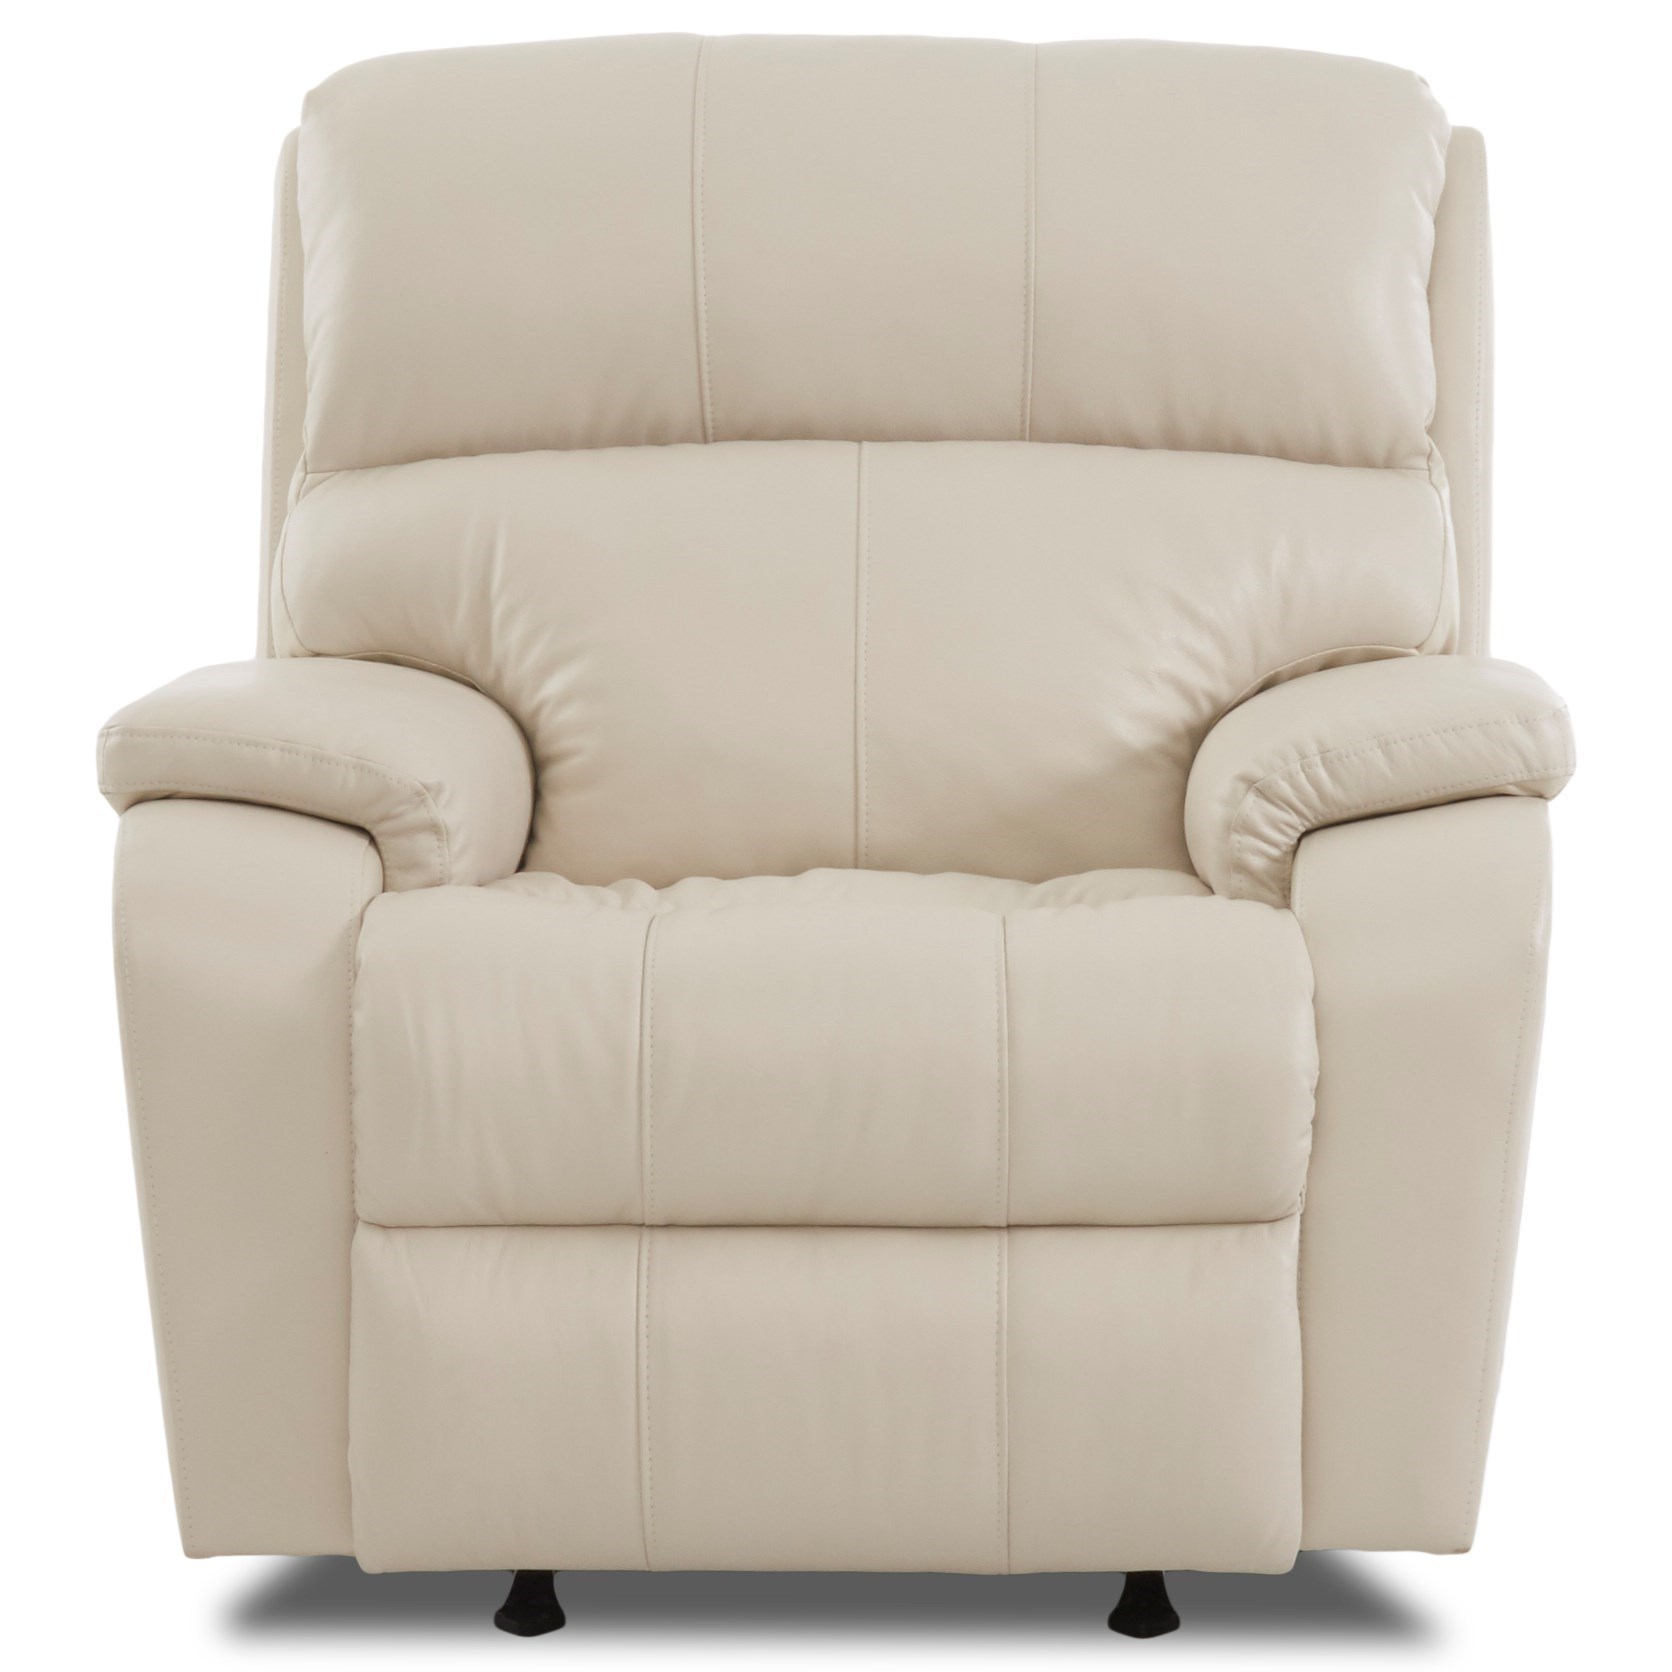 Casual Power Recliner with Power Head & Lumbar and USB Charging Port